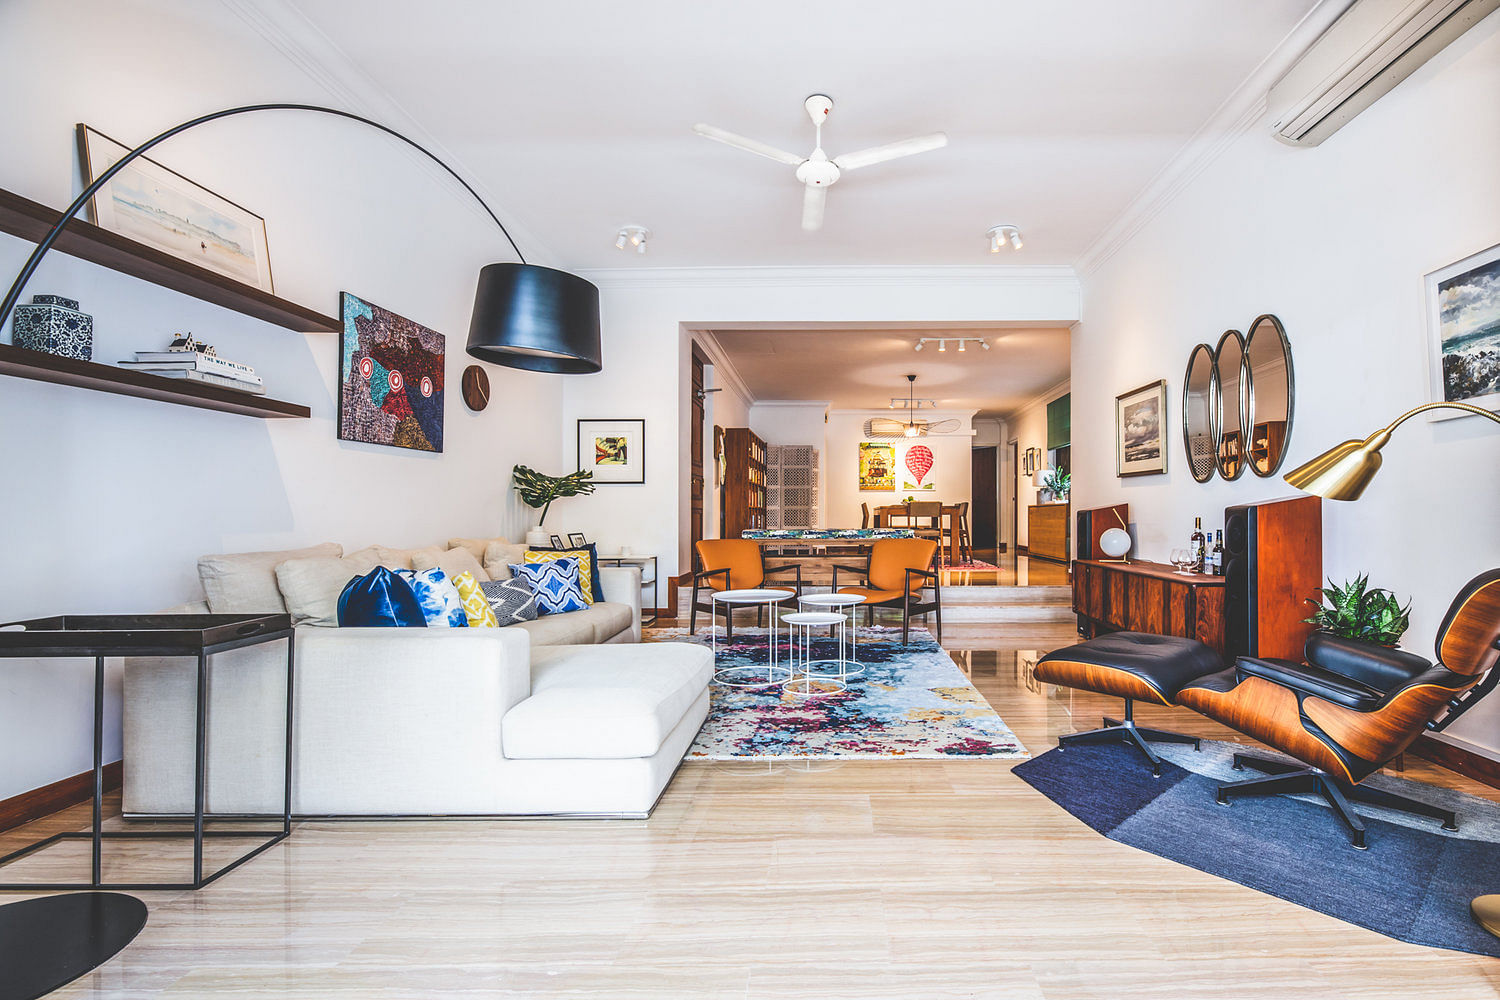 House Tour: A spacious and colourful three-bedroom condominium apartment title=